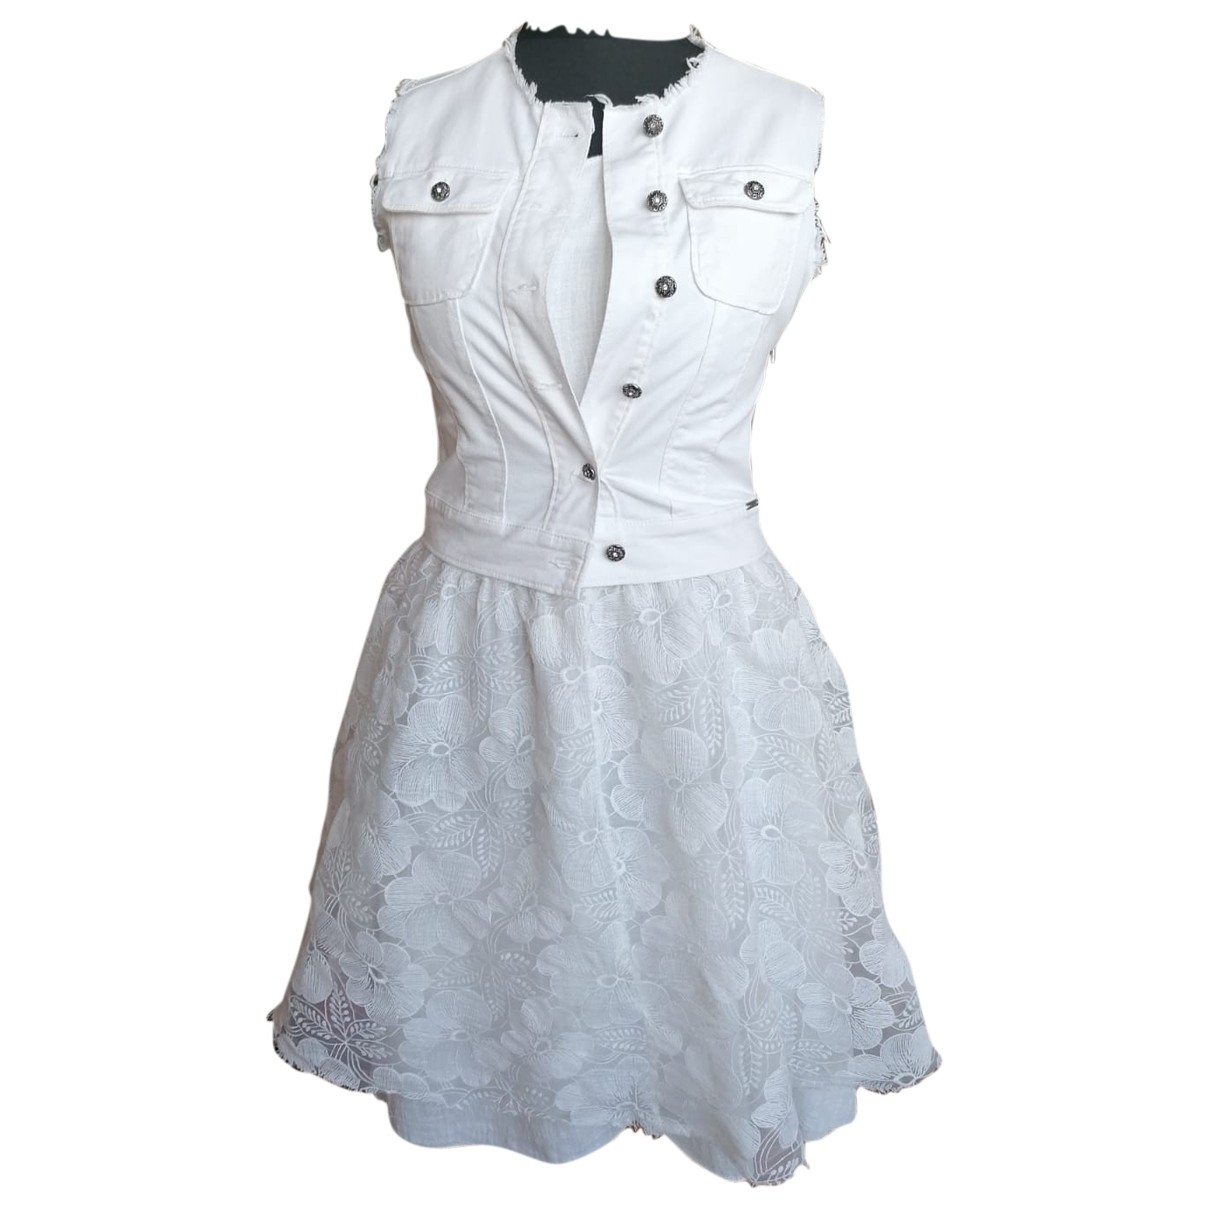 Meteo N White Cotton dress for Kids 14 years - S FR